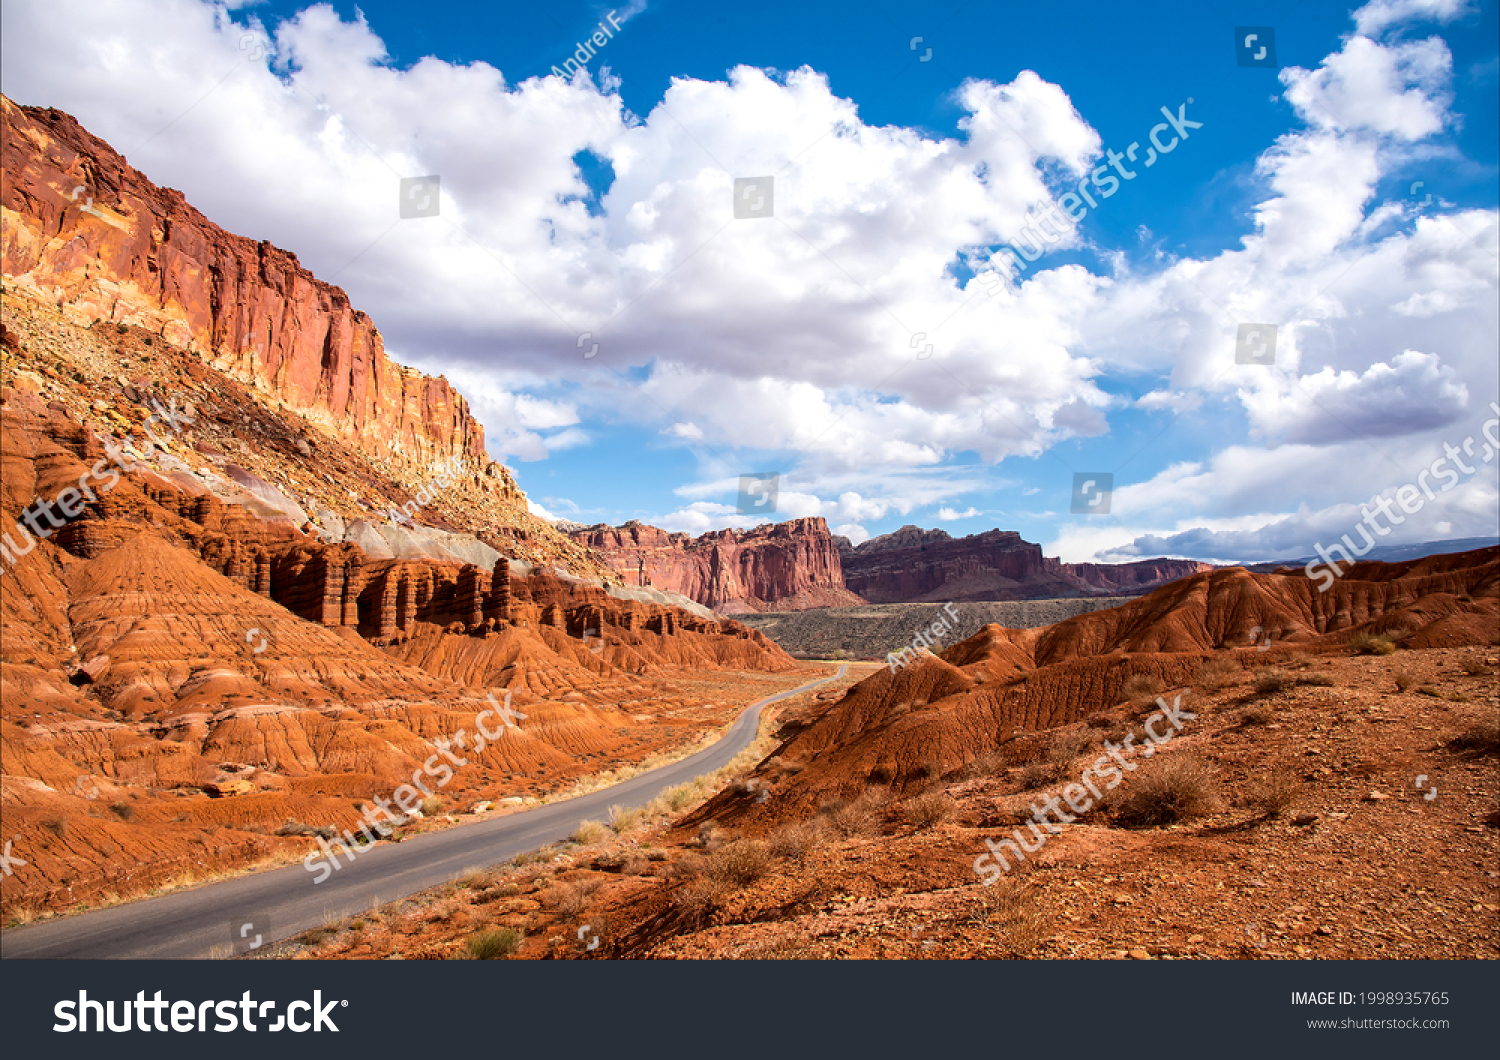 The road through the canyon on a clear day. Red rock canyon road in mountains. Canyon road landscape. Mountain road panorama #1998935765